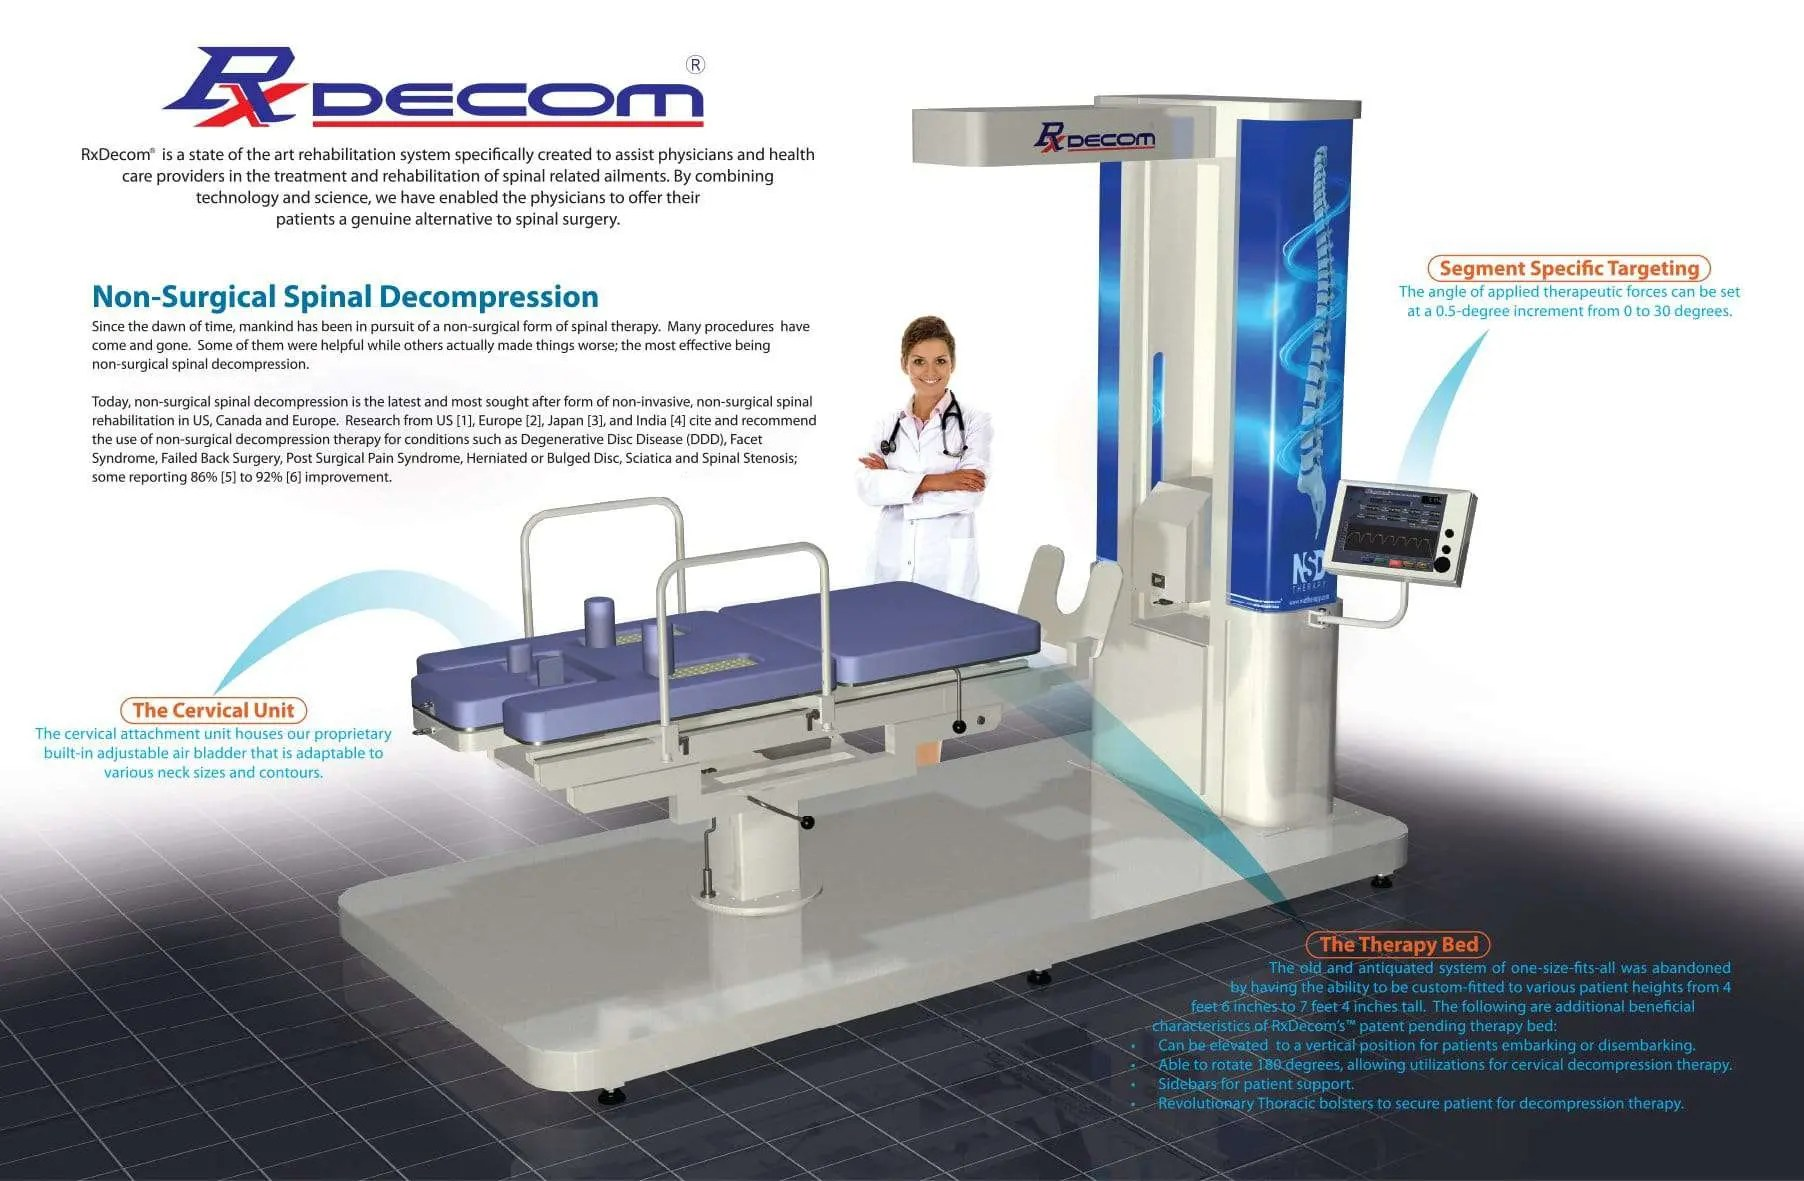 RxDecom's Propriety systems and technologies